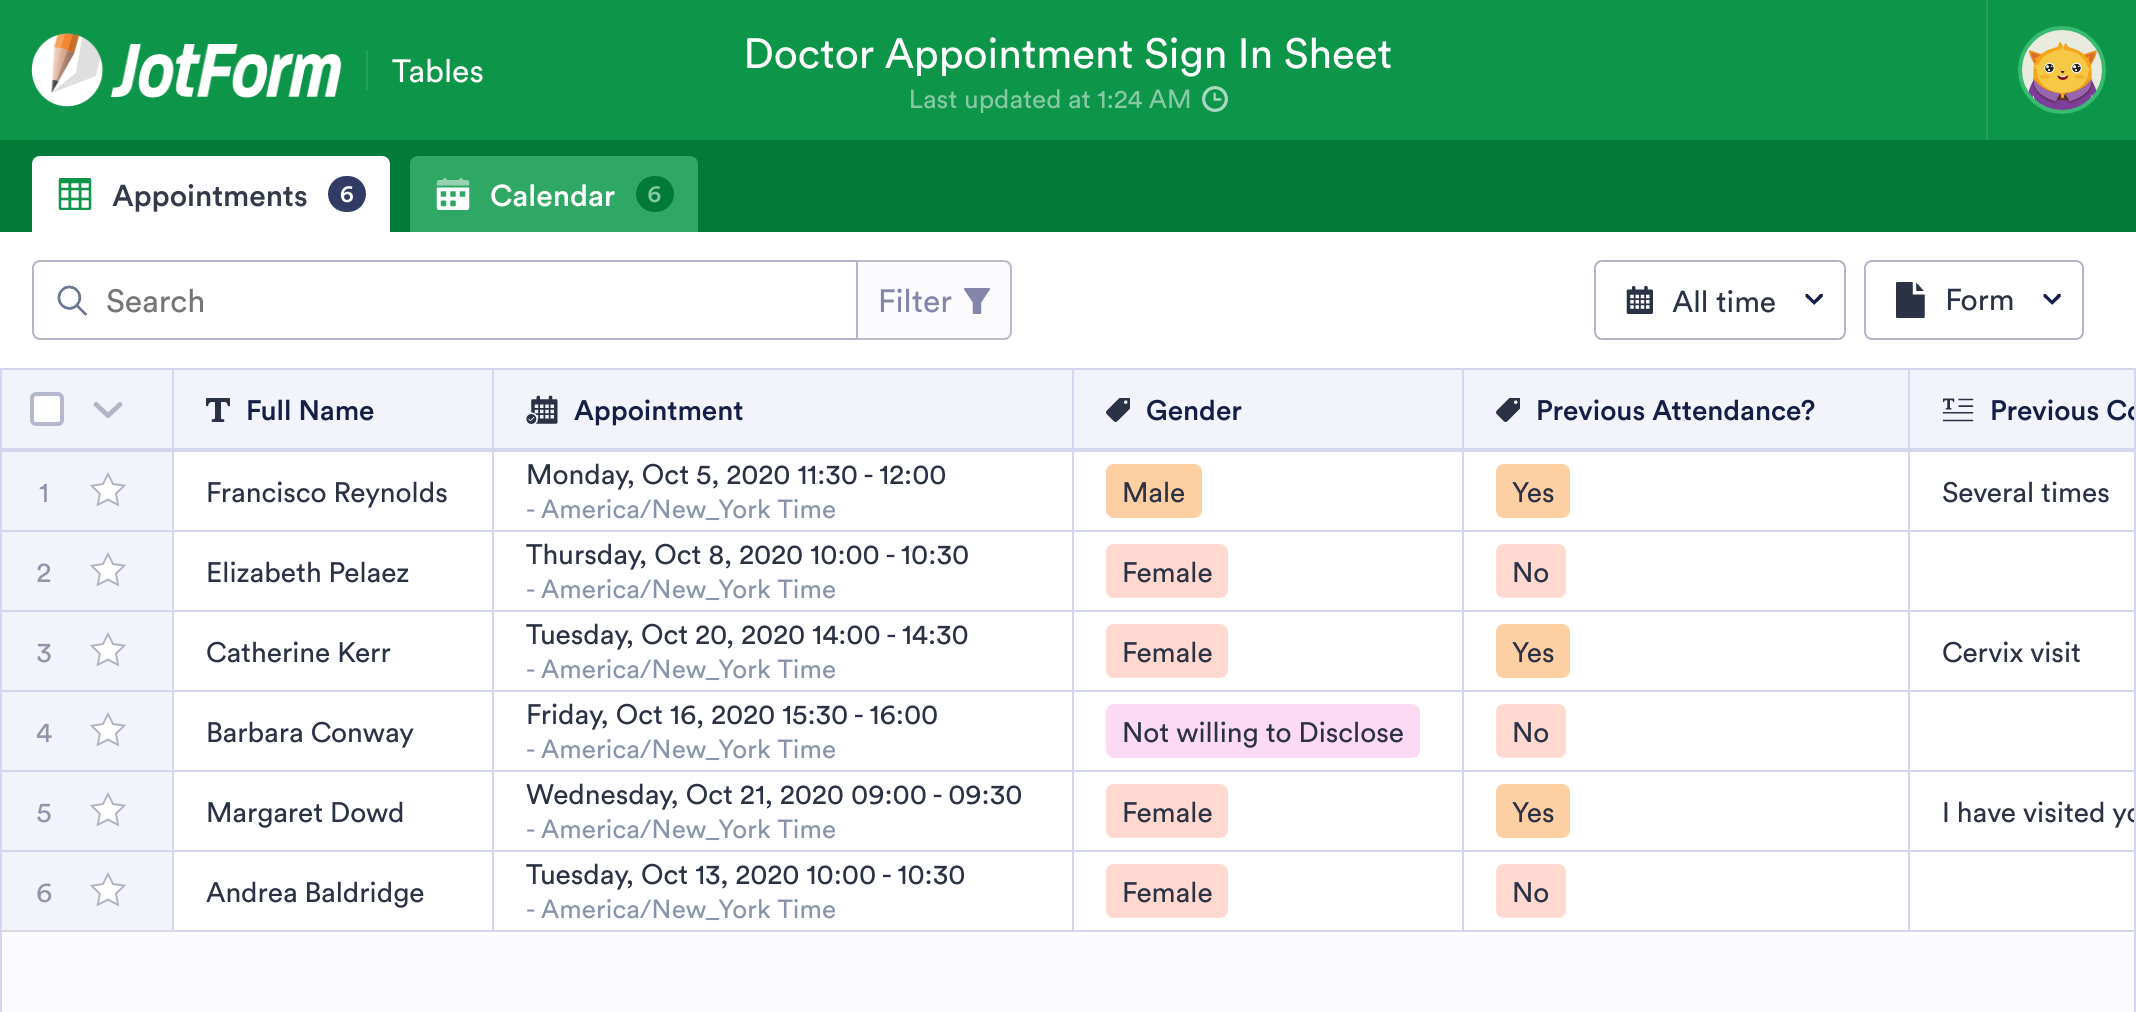 Doctor Appointment Sign In Sheet